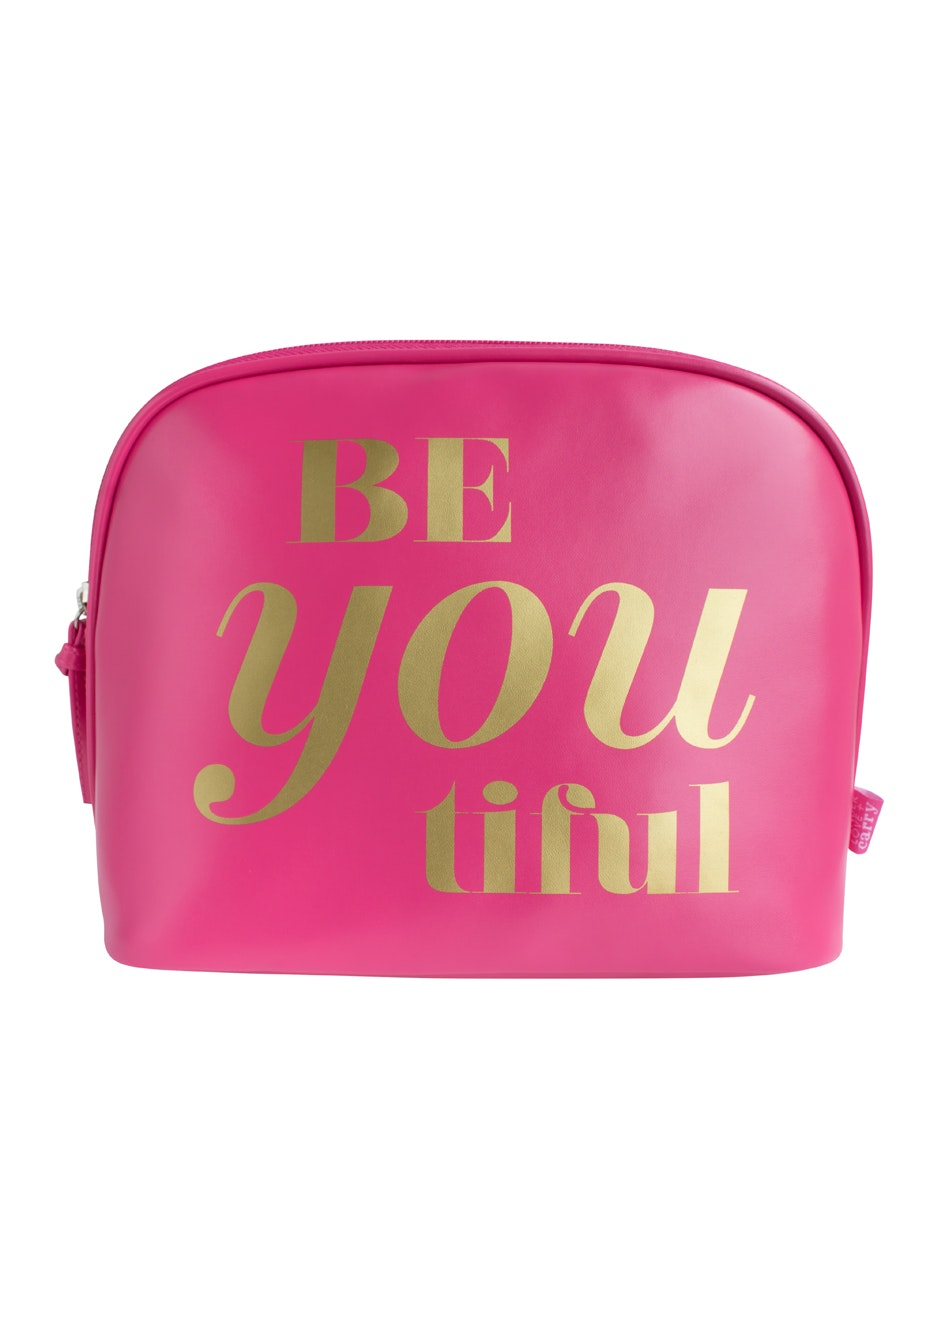 TL+C - BeYoutiful you Cosmetic Clutch - Pink/Gold